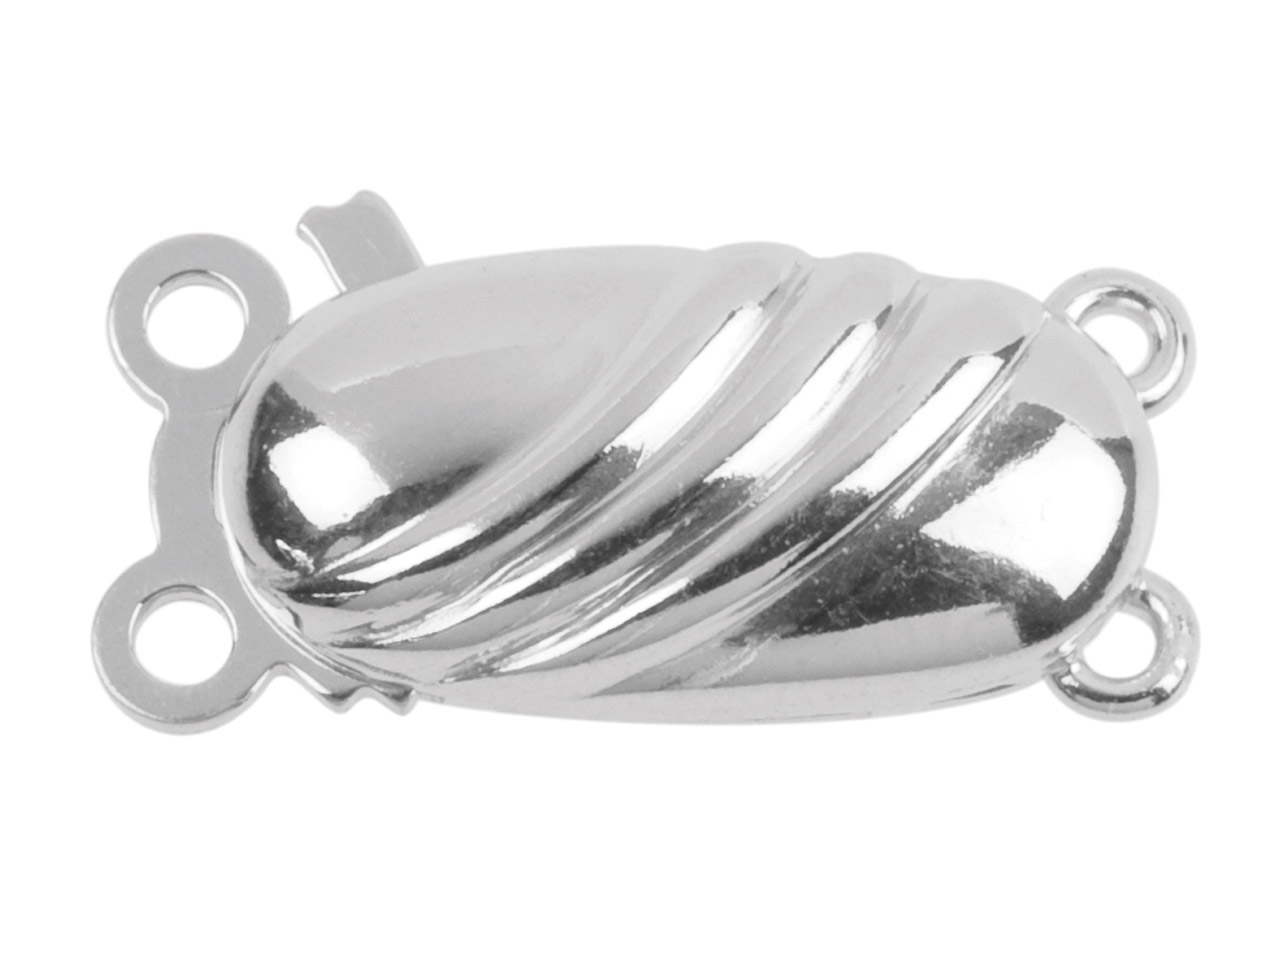 Sterling Silver 13mm Oval Patterned 2 Row Clasp 13x5mm, 3 Diagonal      Curved Soft Ridges